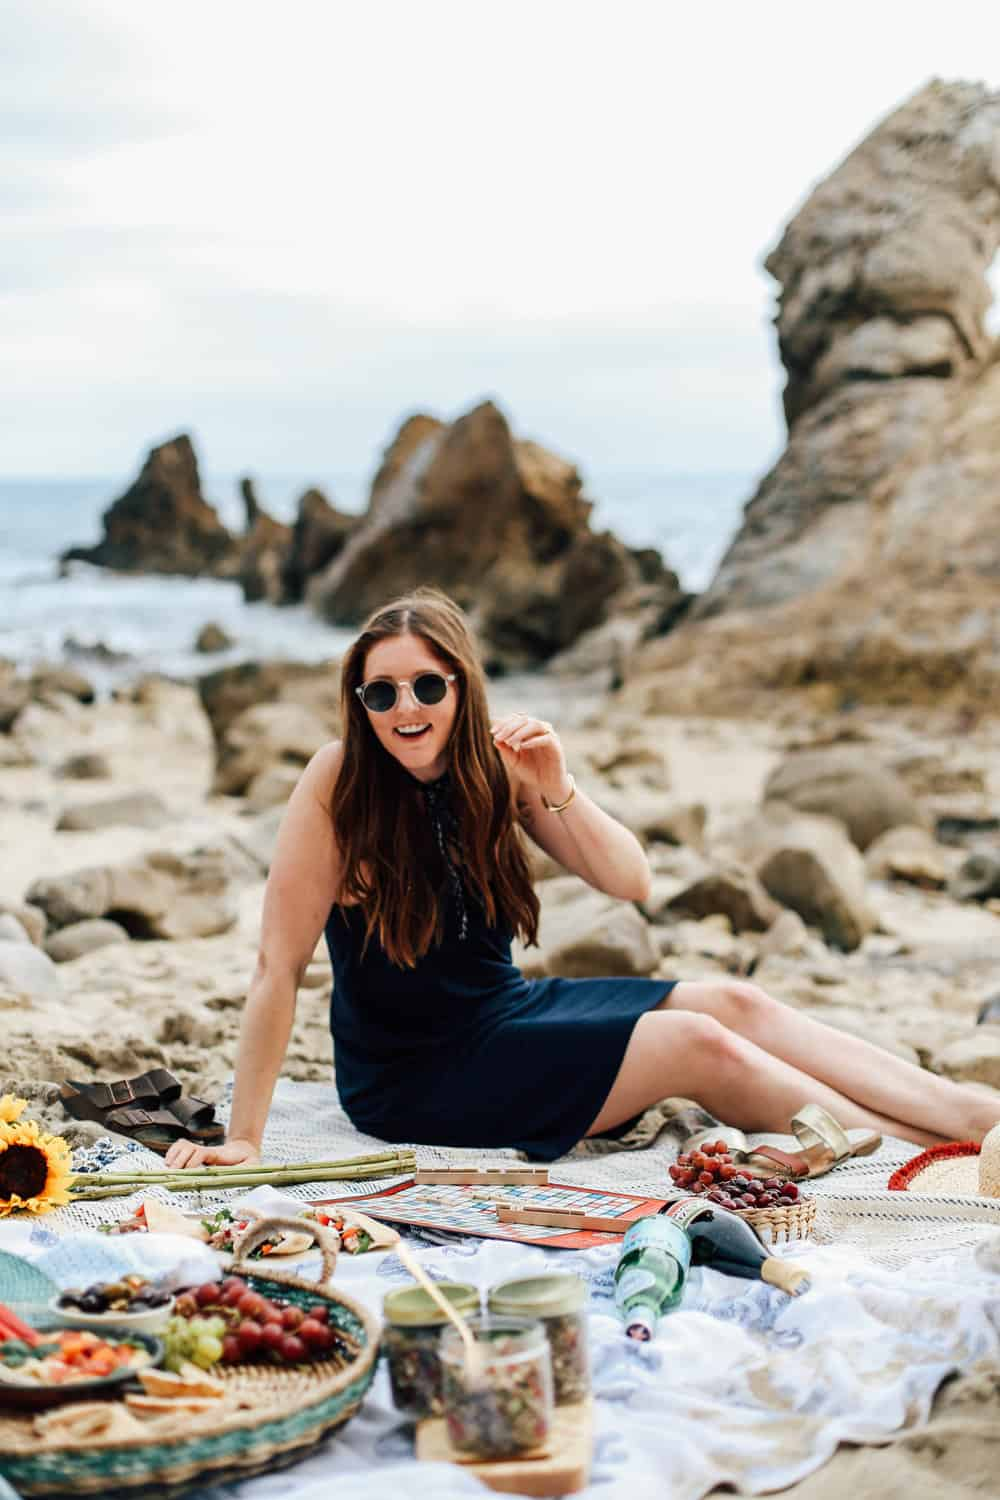 Elizabeth sitting on beach towels with beach food and Scrabble game board on the beach